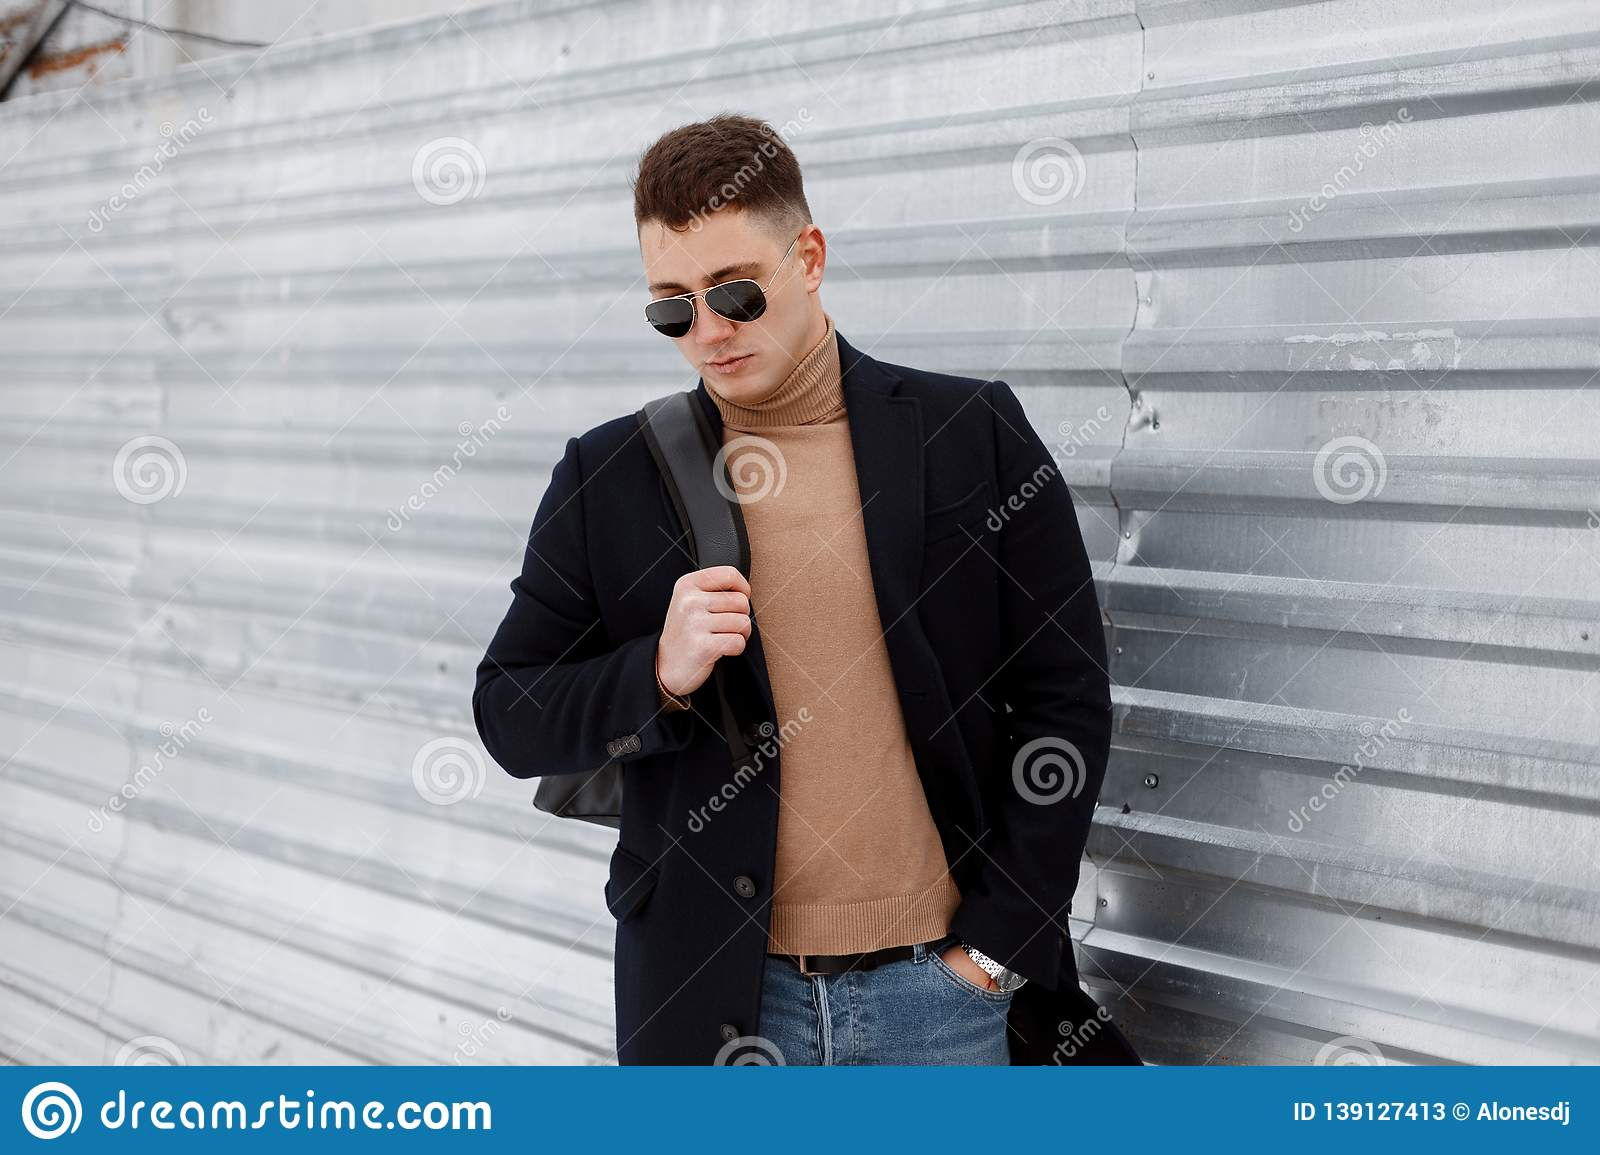 379ac70e9c2 Attractive young hipster man stylish sunglasses with a stylish hairstyle in  a vintage knitted sweater with